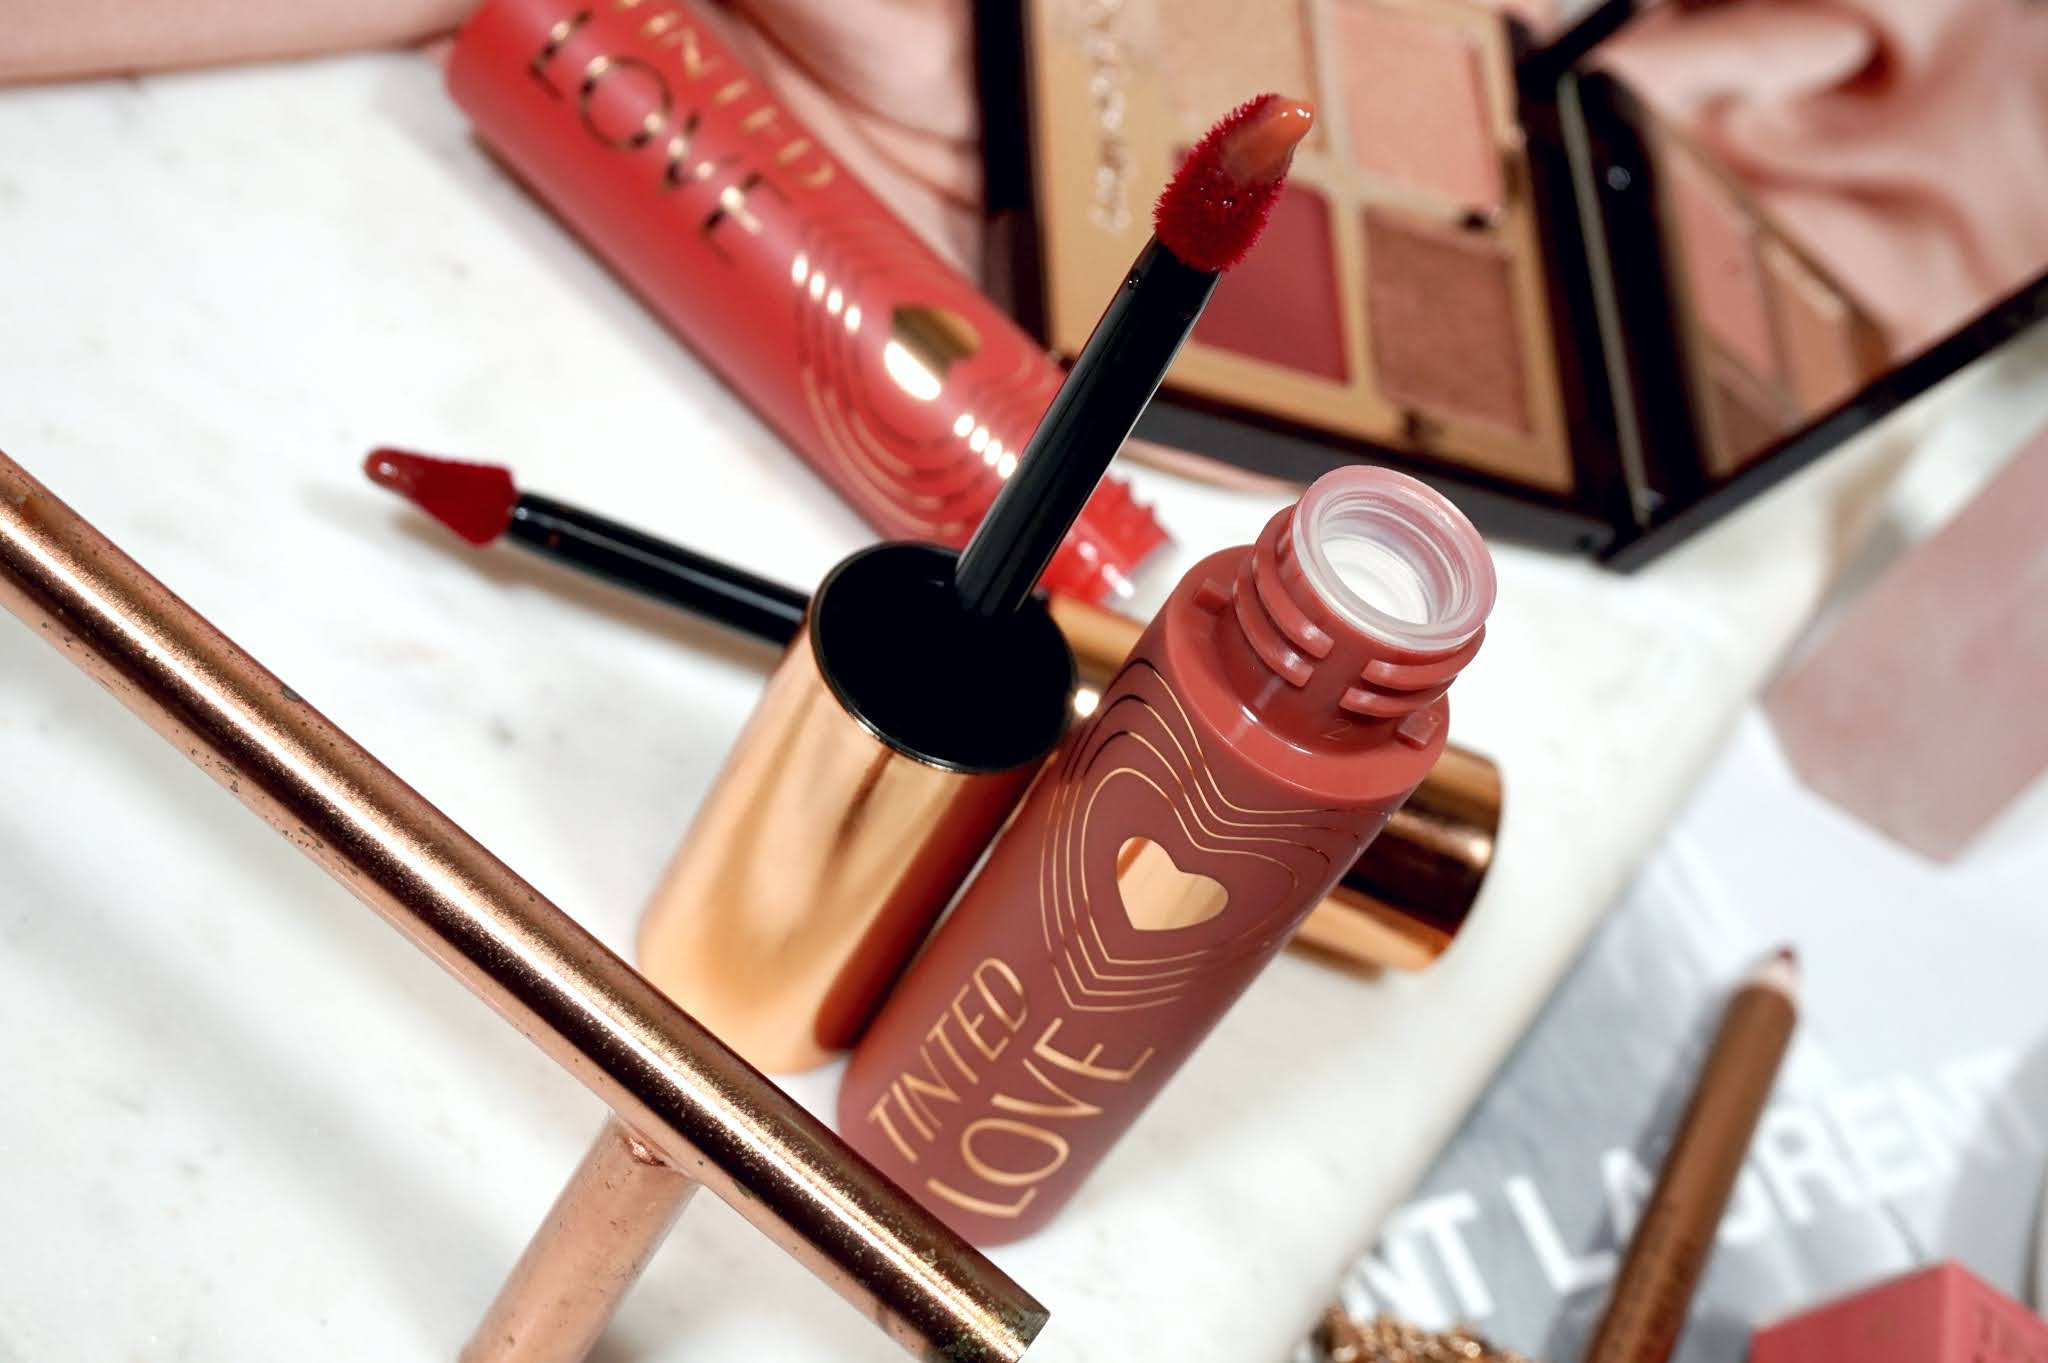 Charlotte Tilbury Tinted Love Lip & Cheek Tint Review and Swatches